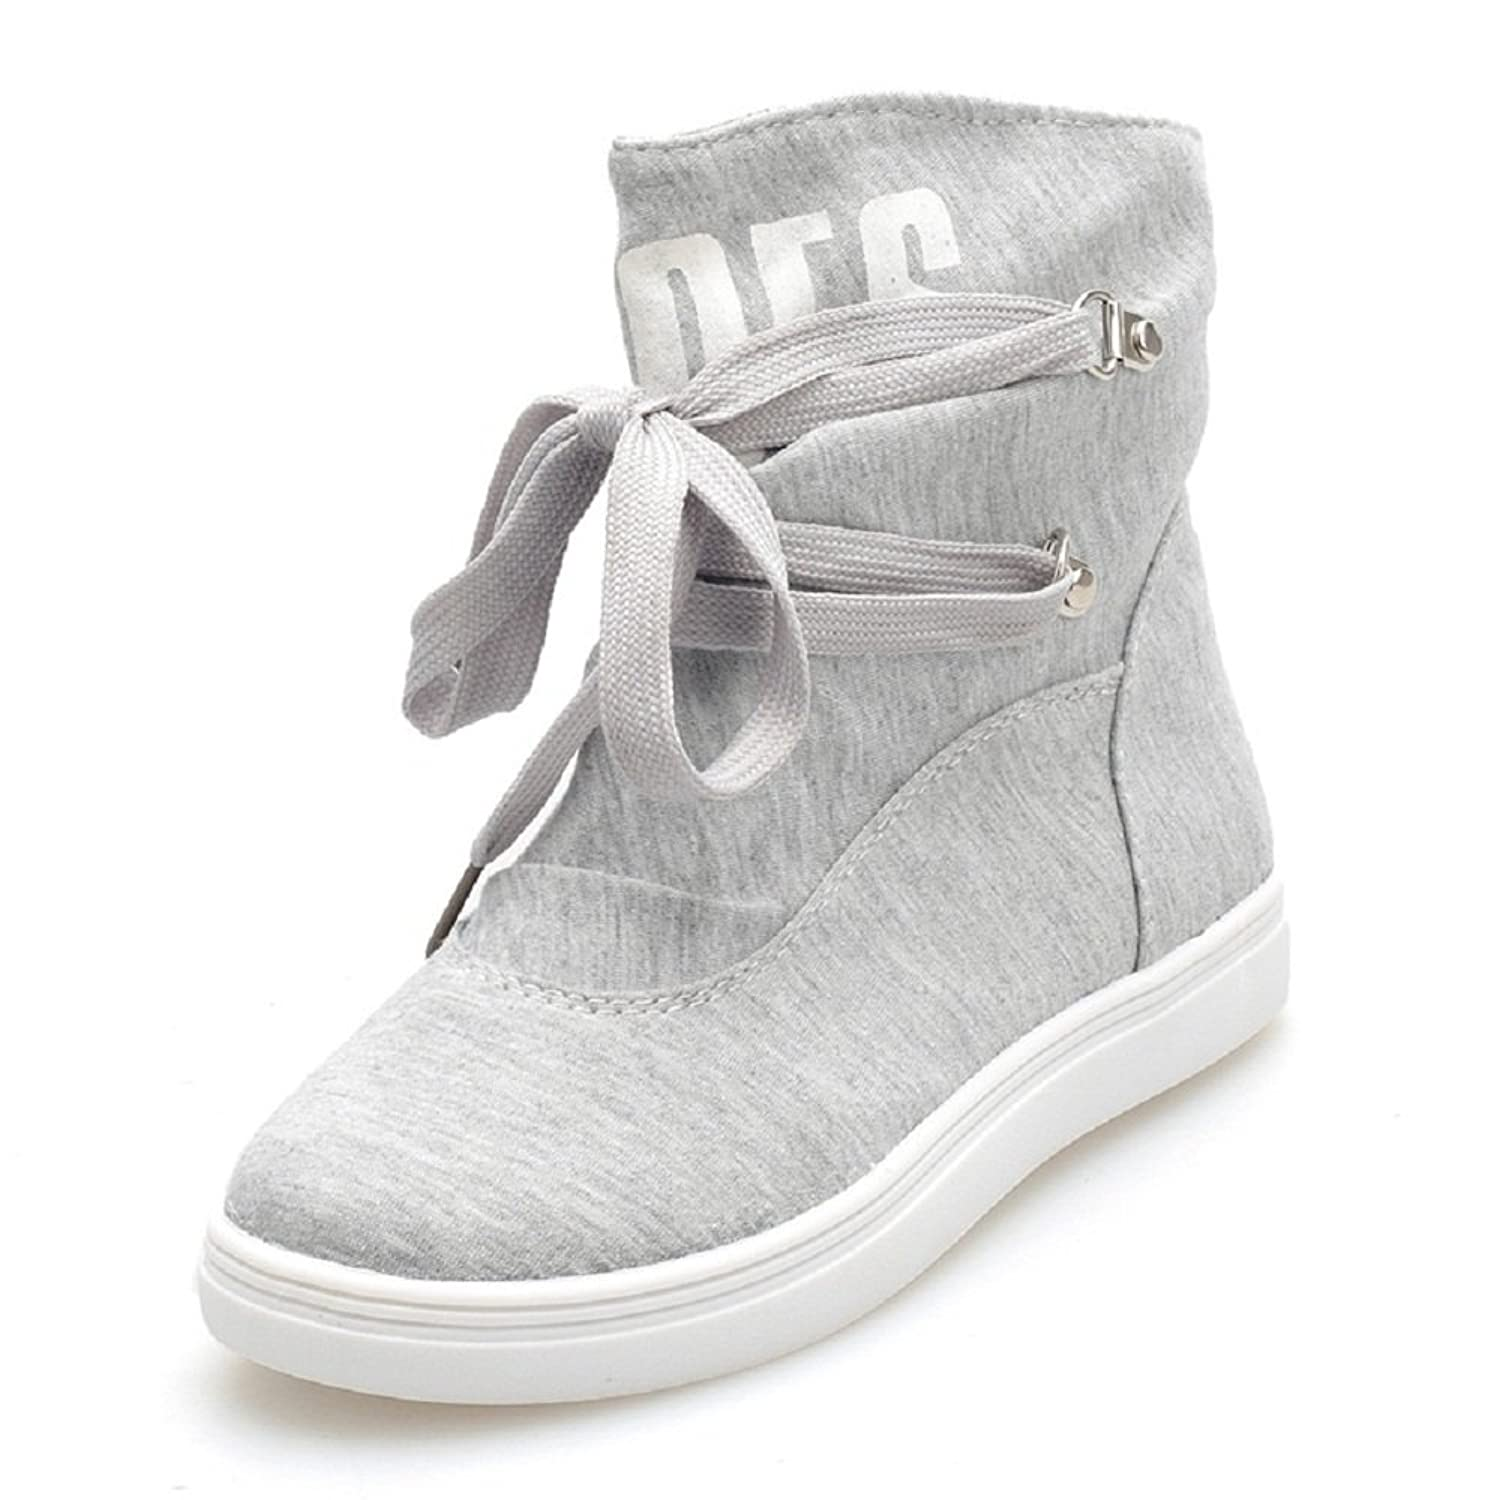 2016 New Hot Sale Fashion Women's High-top Buckle Shoes Casual Ankle Boots Sport Sneakers